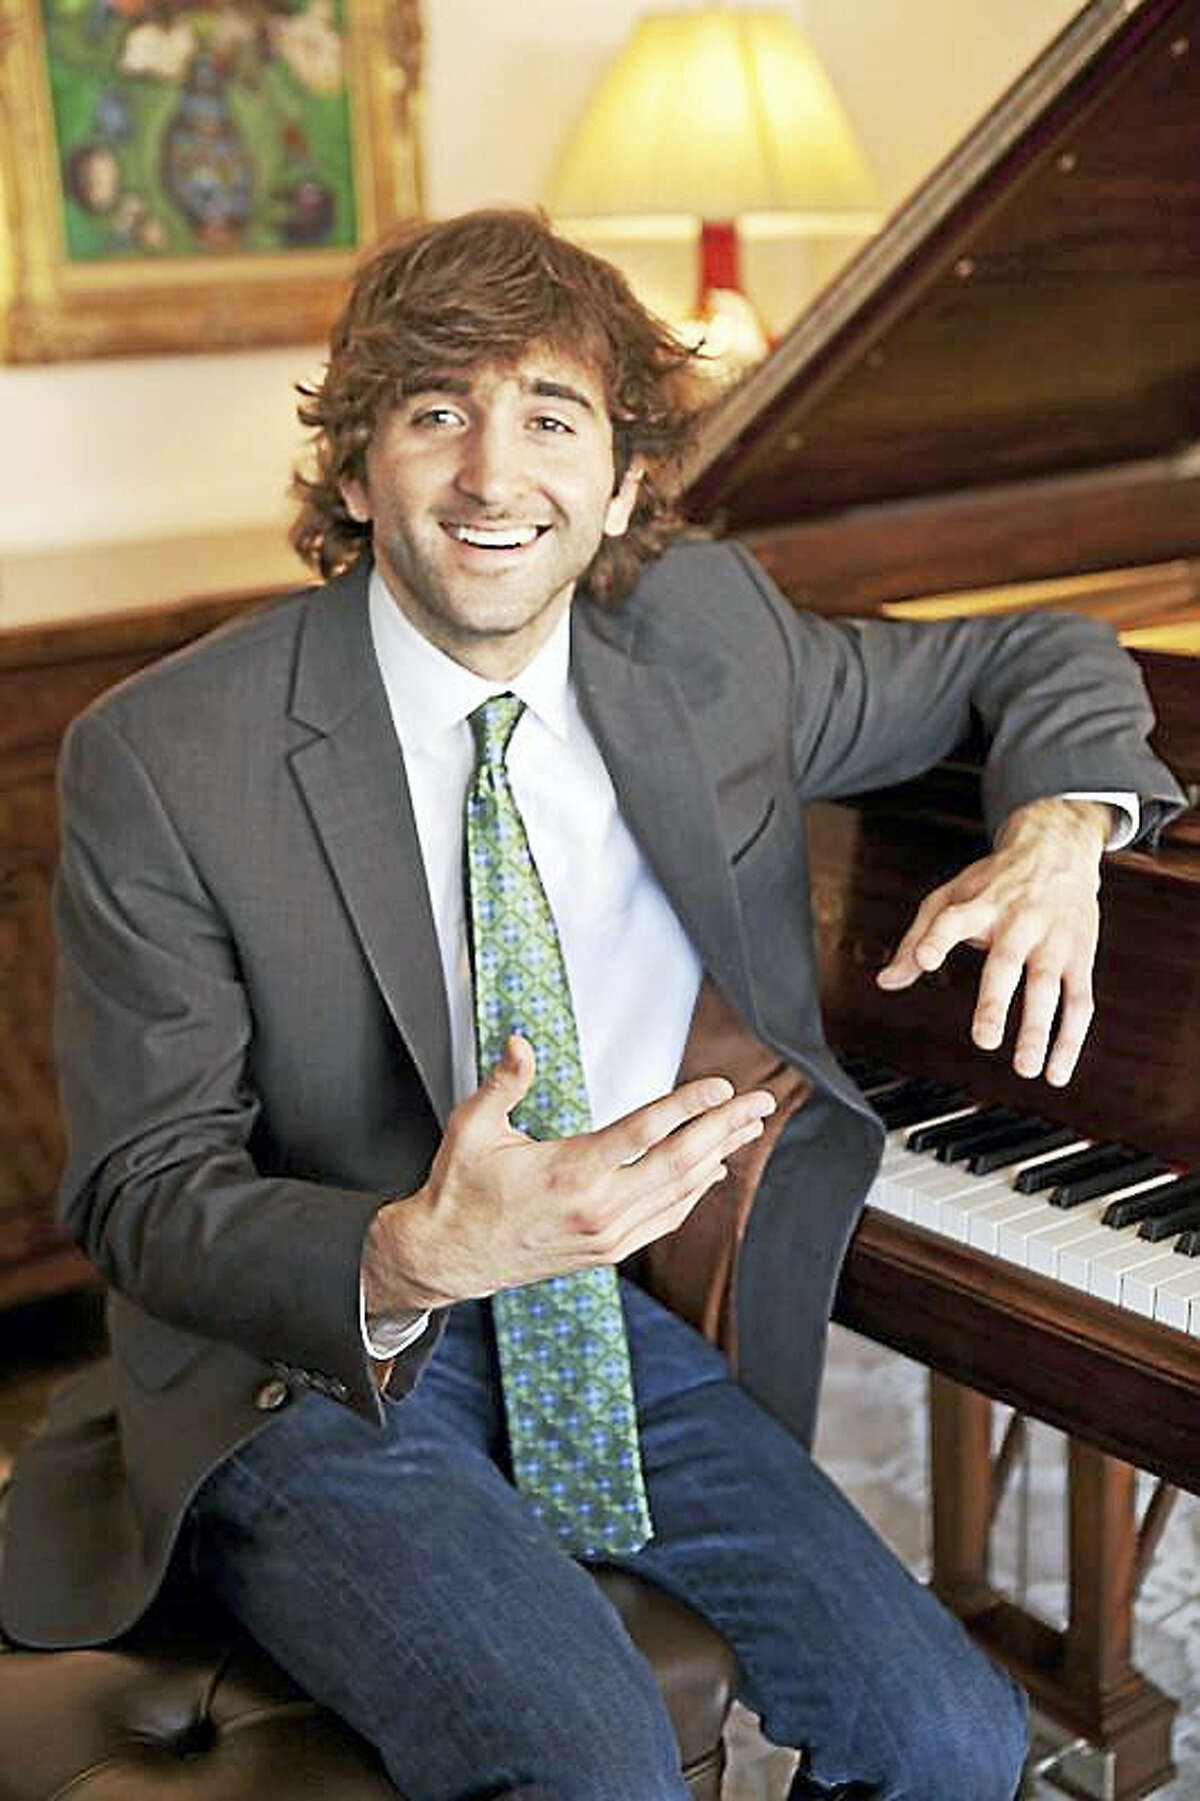 The Joe Alterman Trio joins the lineup at this year's Litchfield Jazz Festival, Aug. 5-6 at the Goshen Fairgrounds. Tickets are now available.